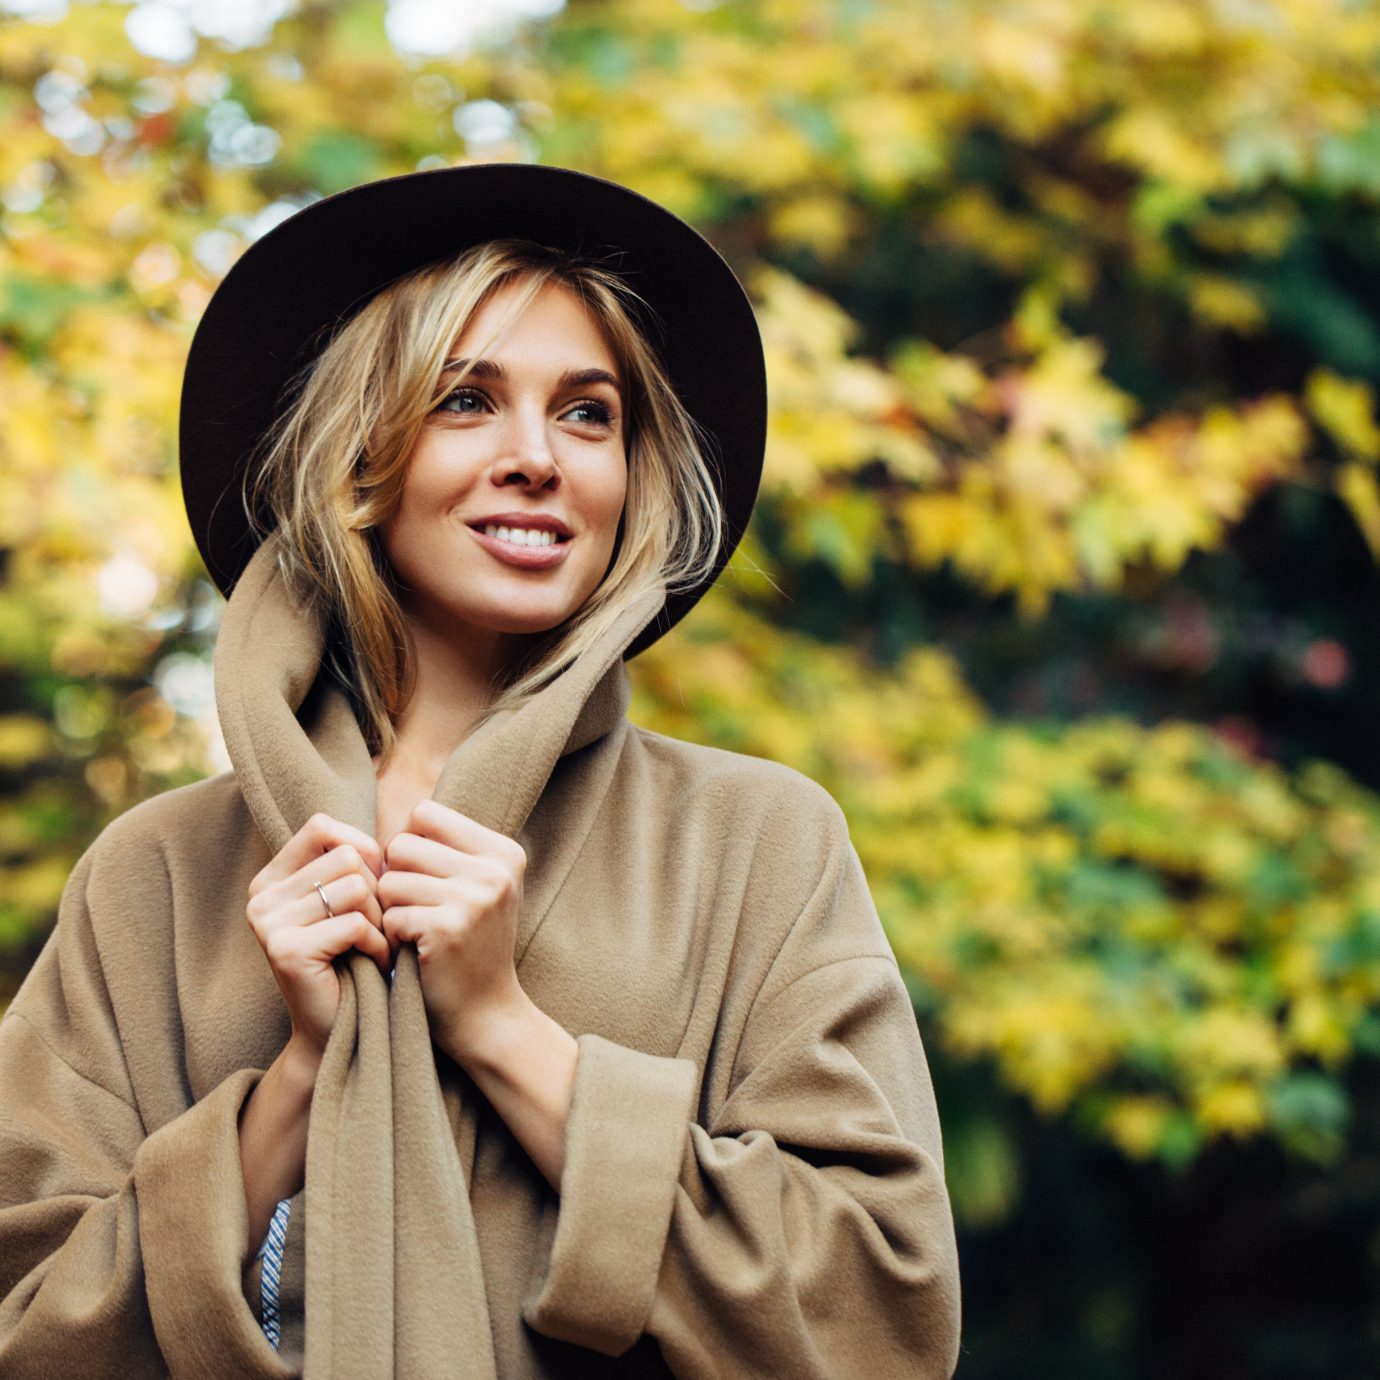 Autumn photo of a girl in a tan jacket, fall items to splurge on